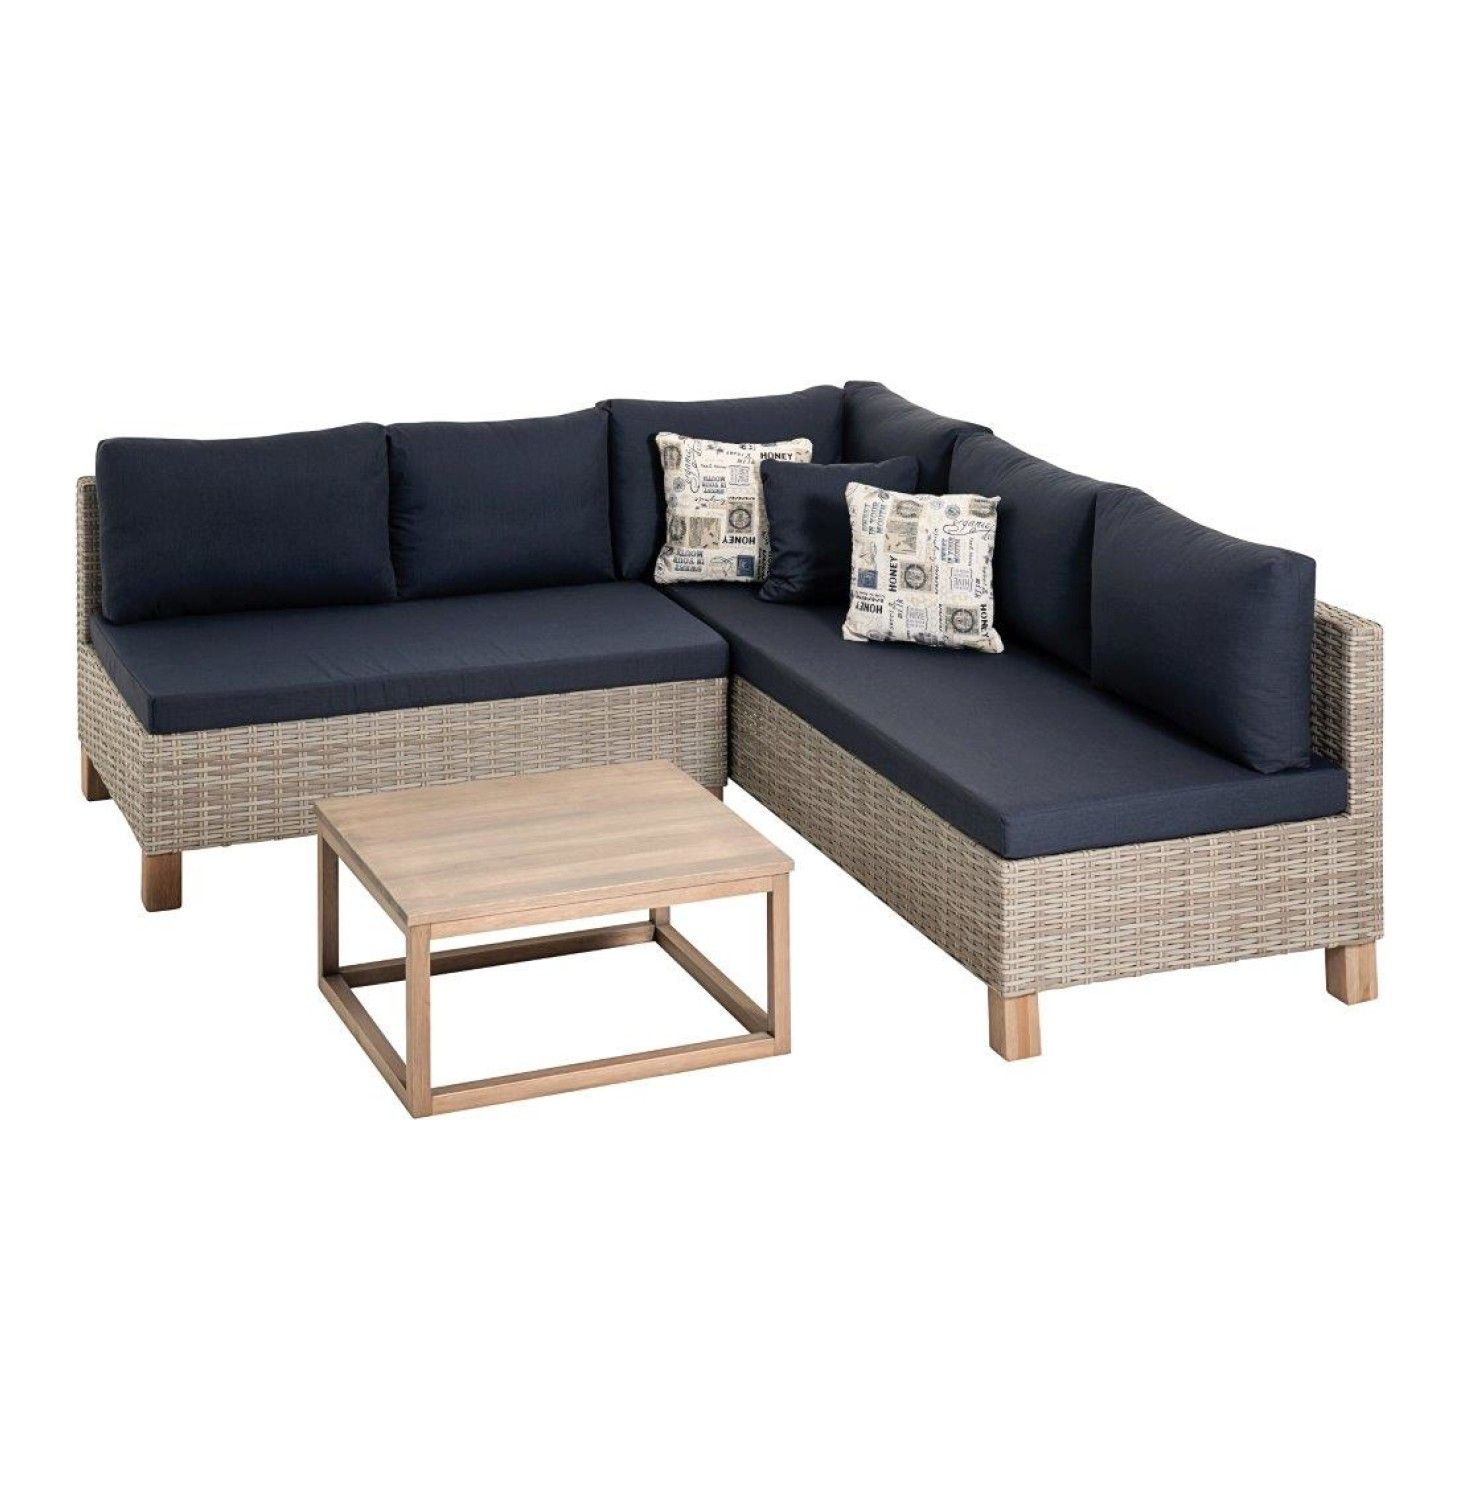 1990 Mm X 2020 Mm Nambiti Wicker Lounge Set Greige/navy